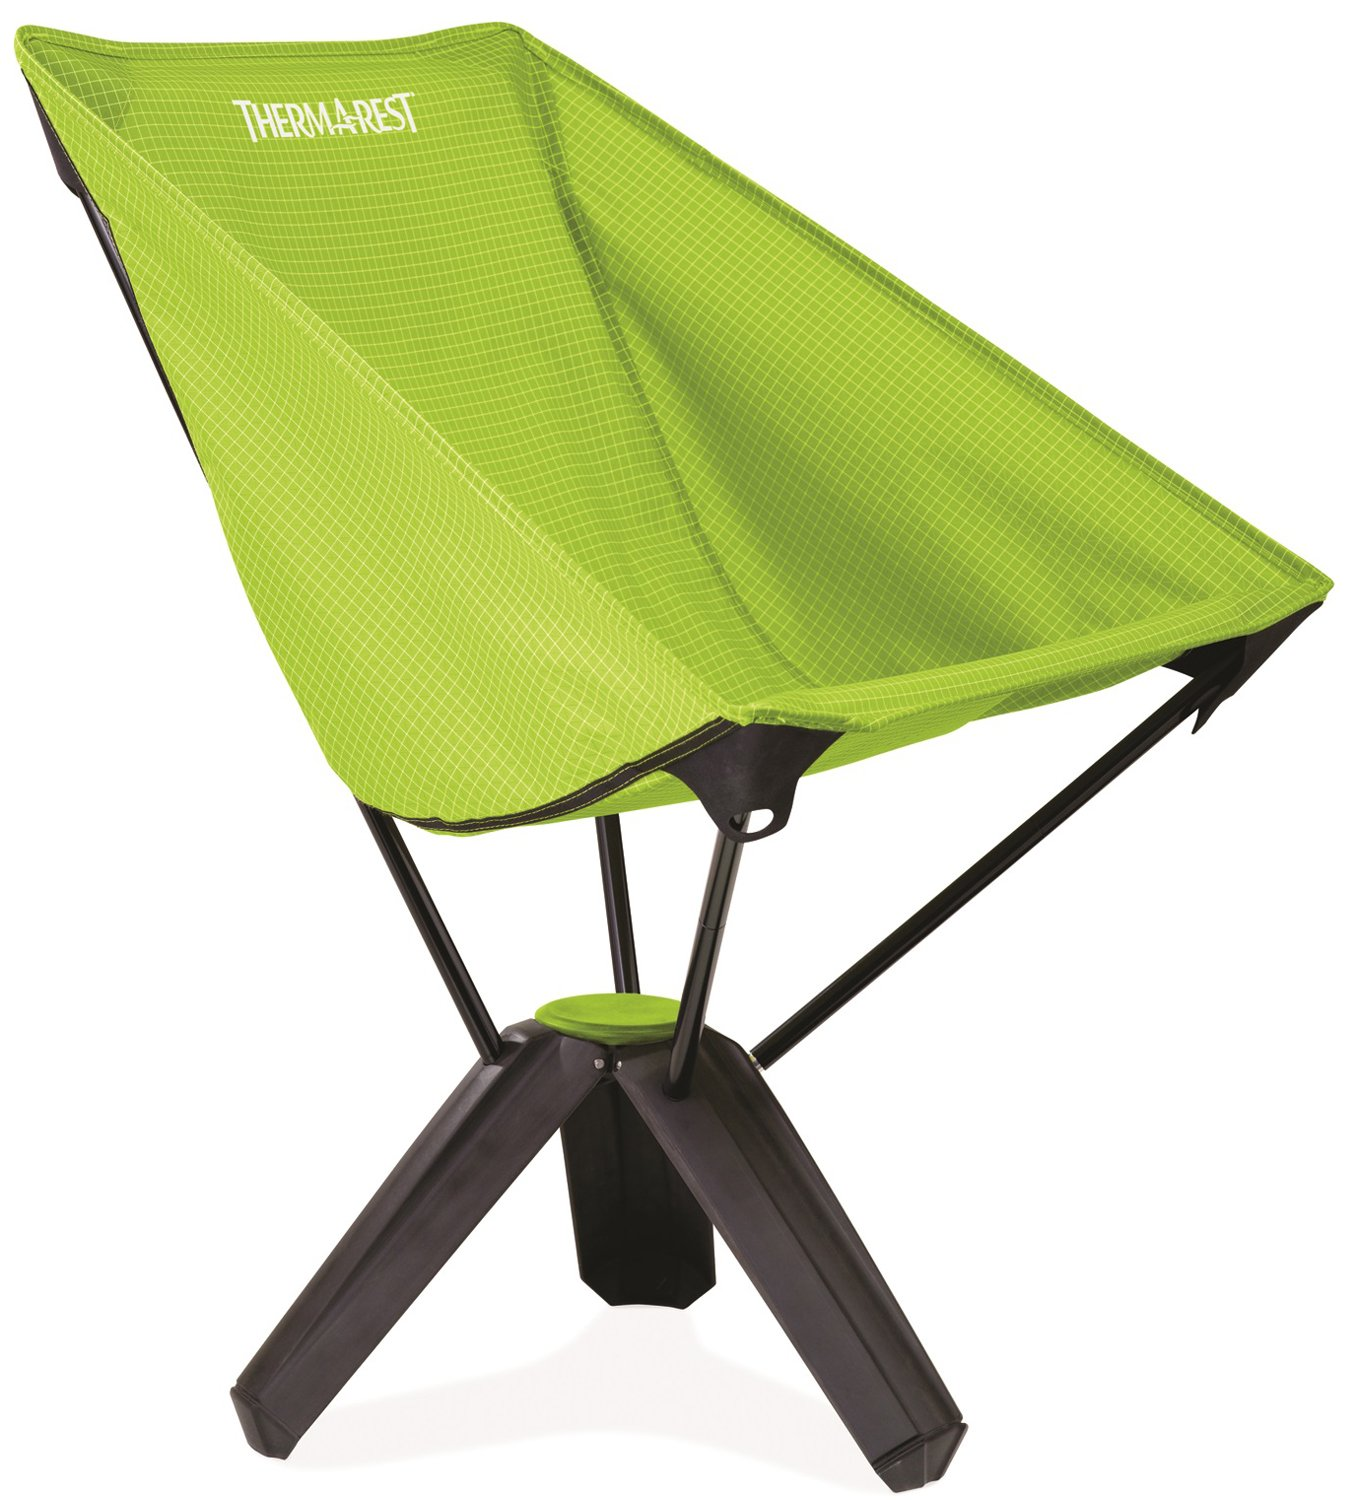 Therm a Rest Treo Chair Amazon Sports & Outdoors